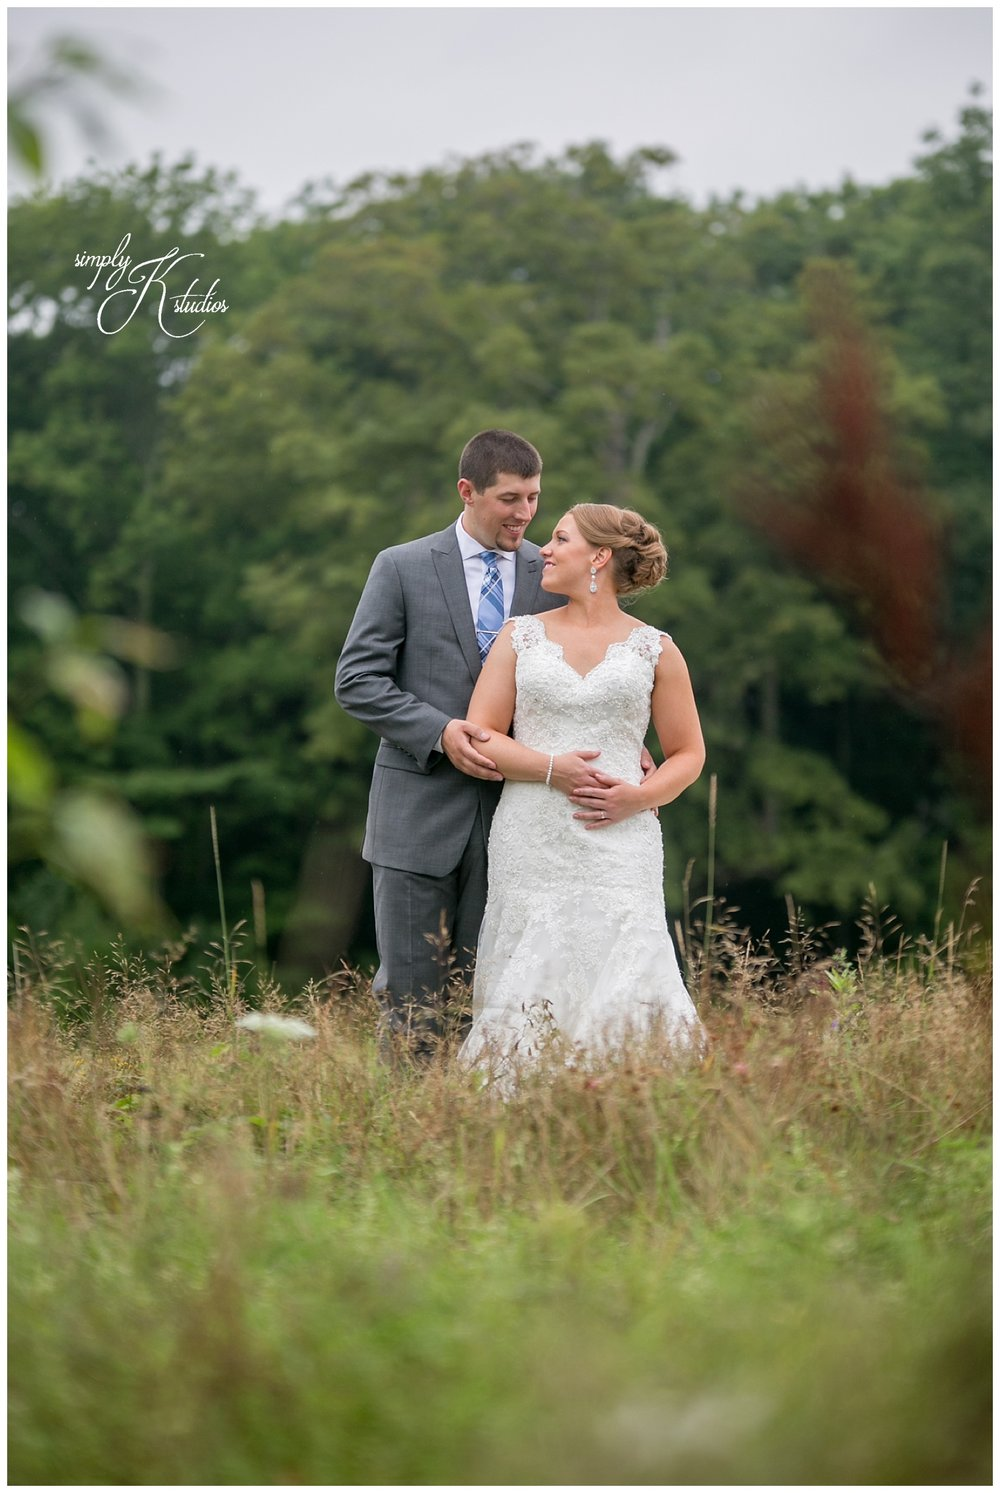 Harrington Farm Wedding Photos.jpg